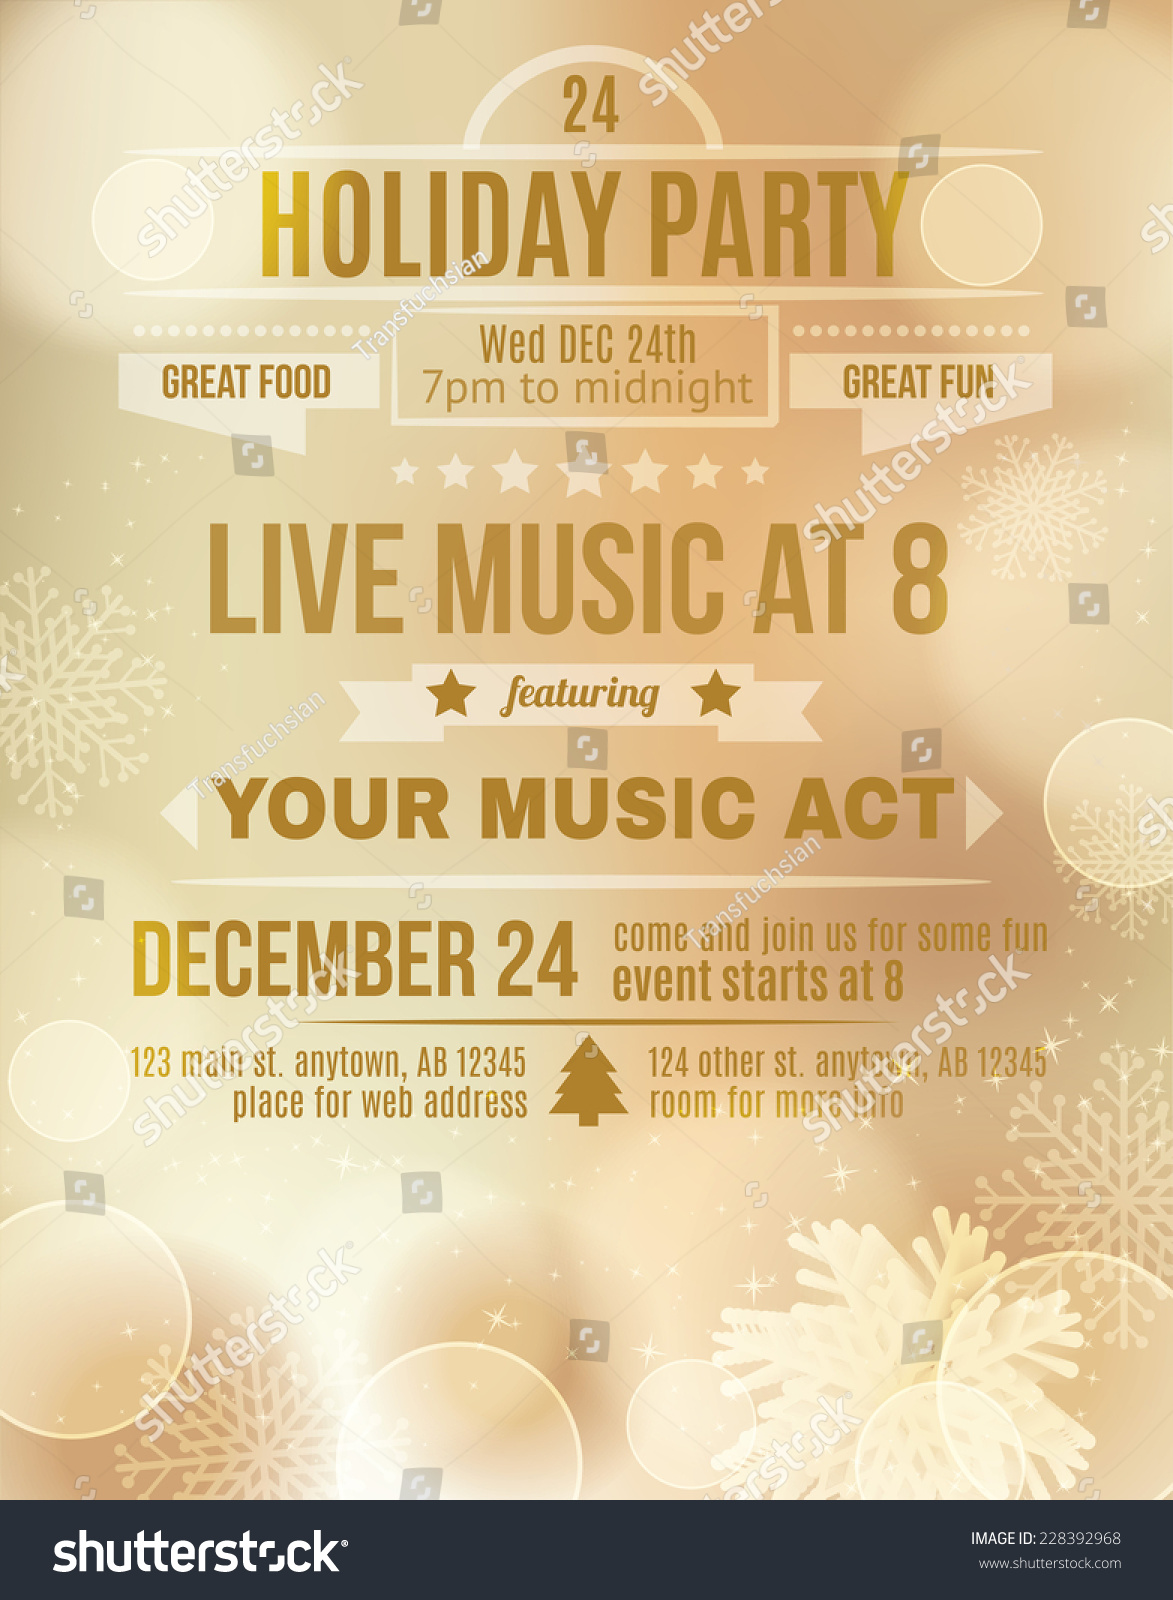 holiday party flyers